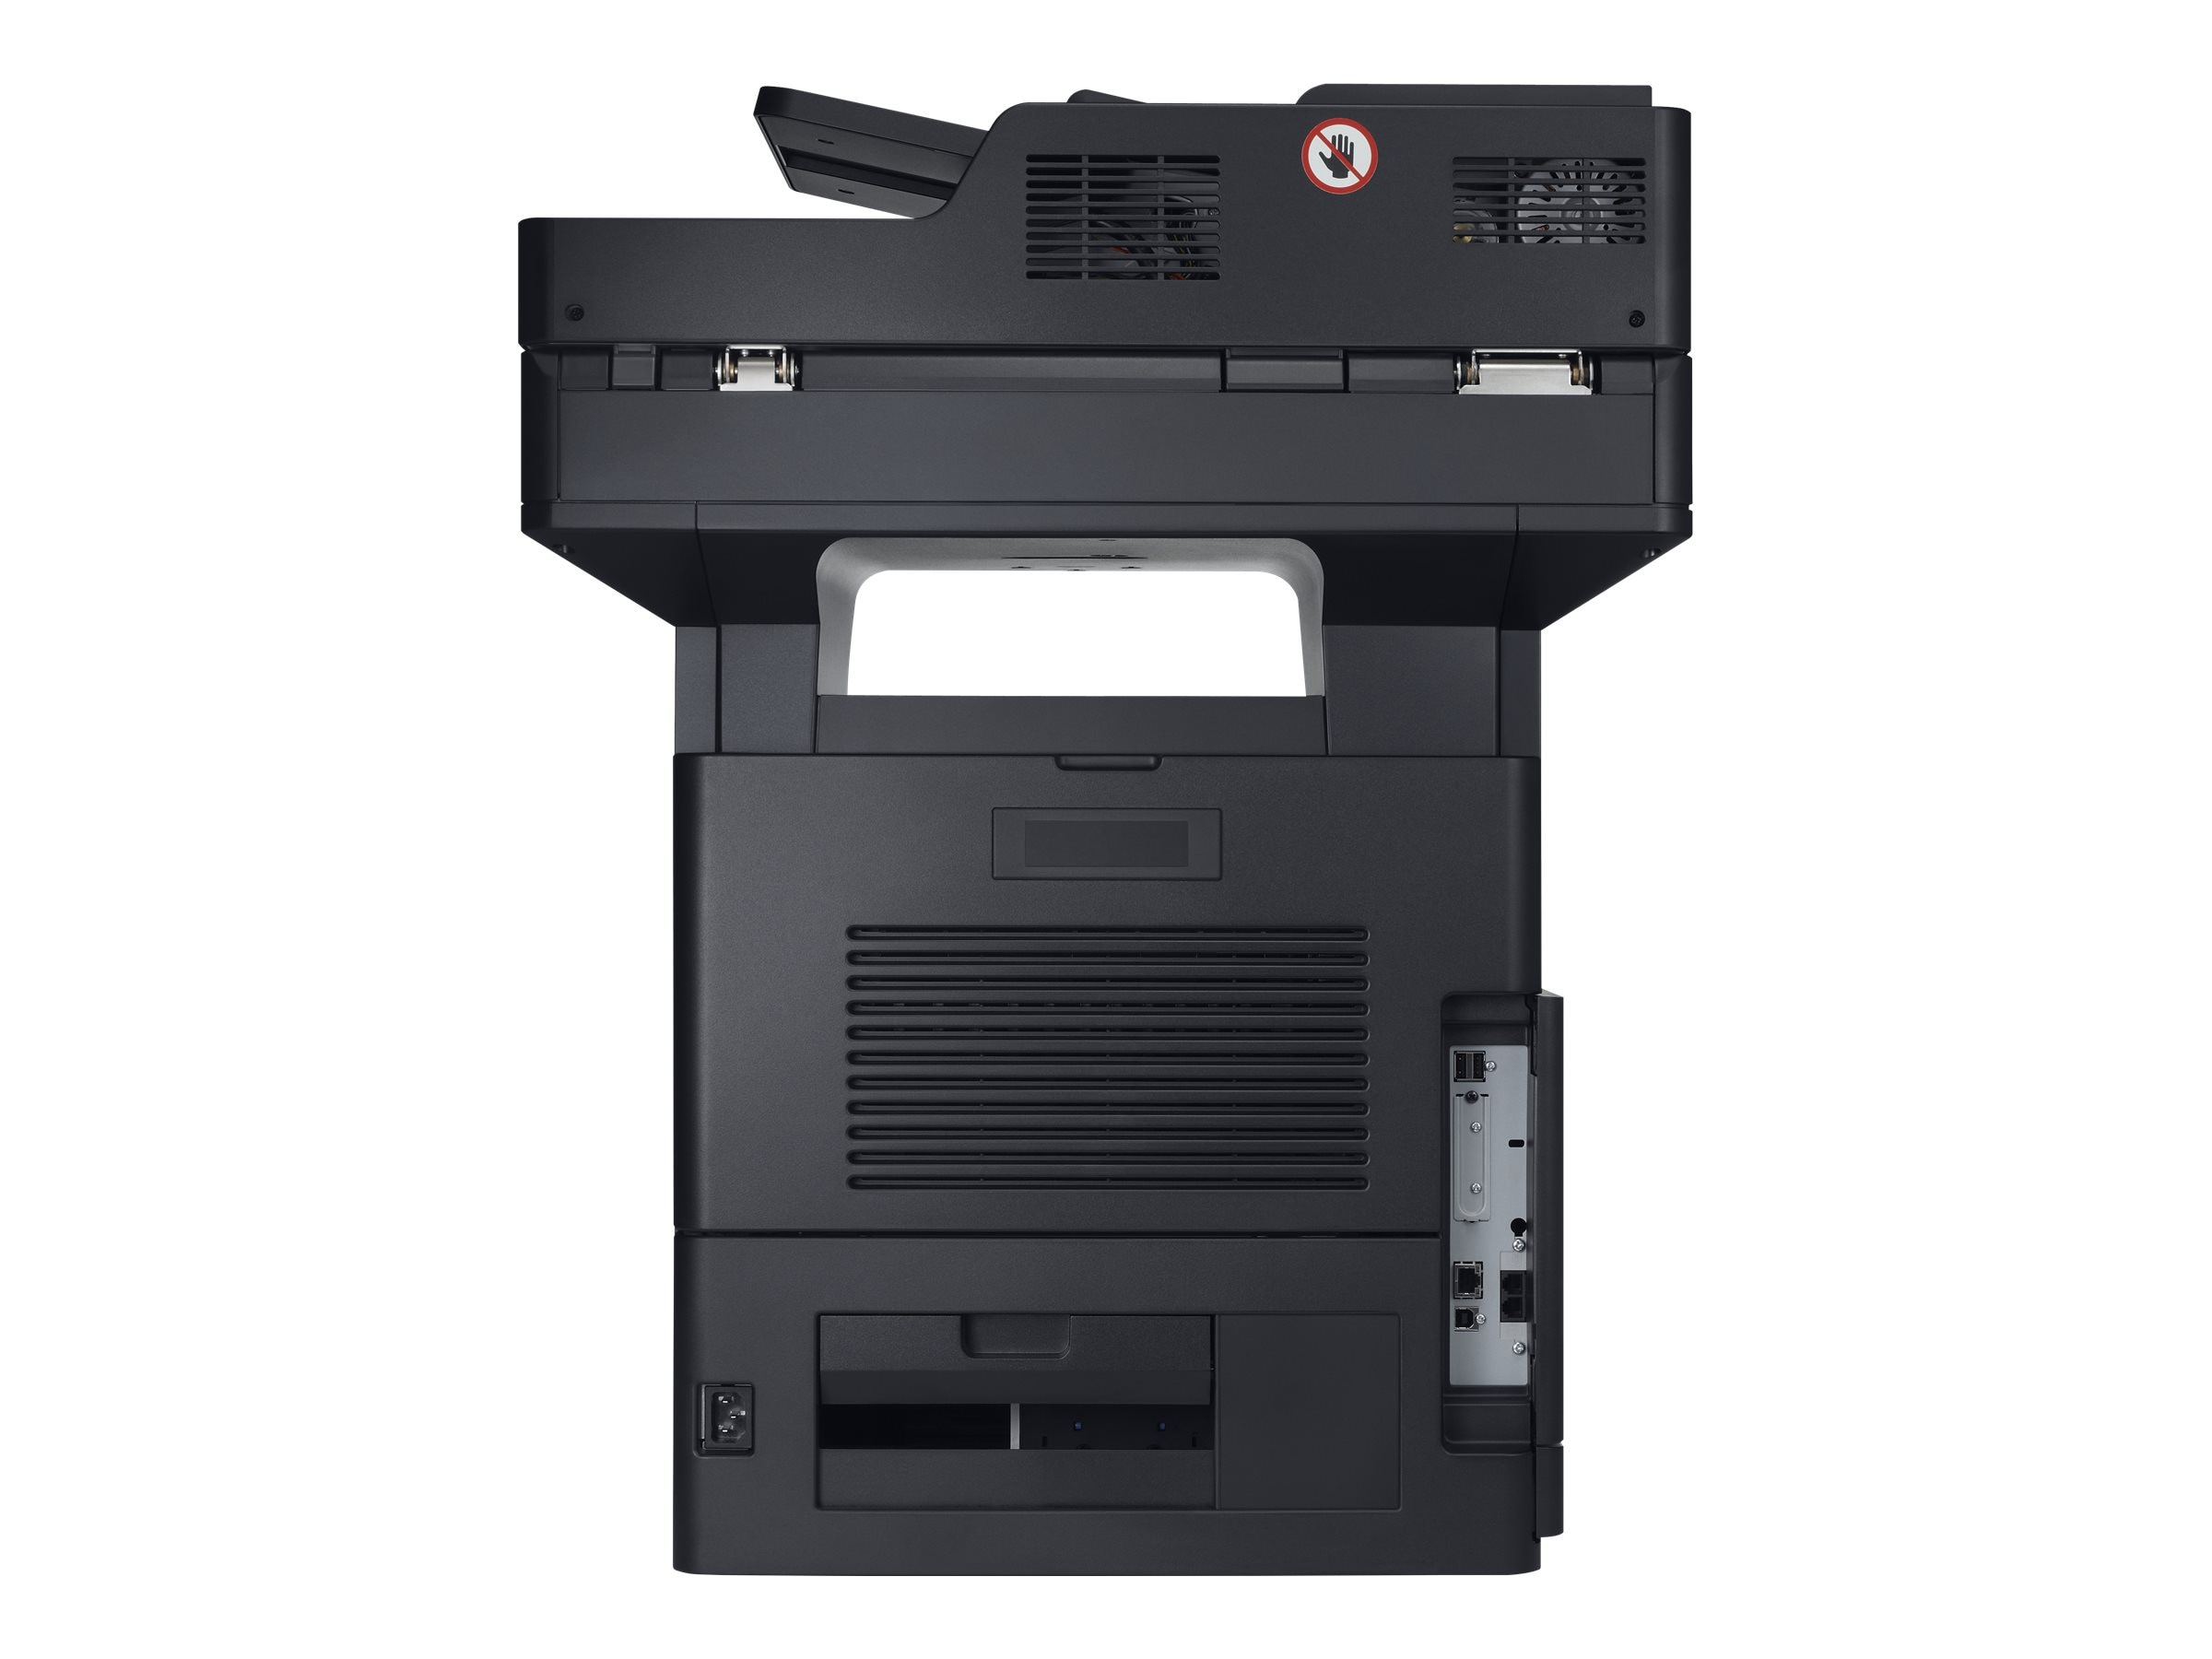 Dell B5465dnf Laser Multifunction Printer, 7V19R